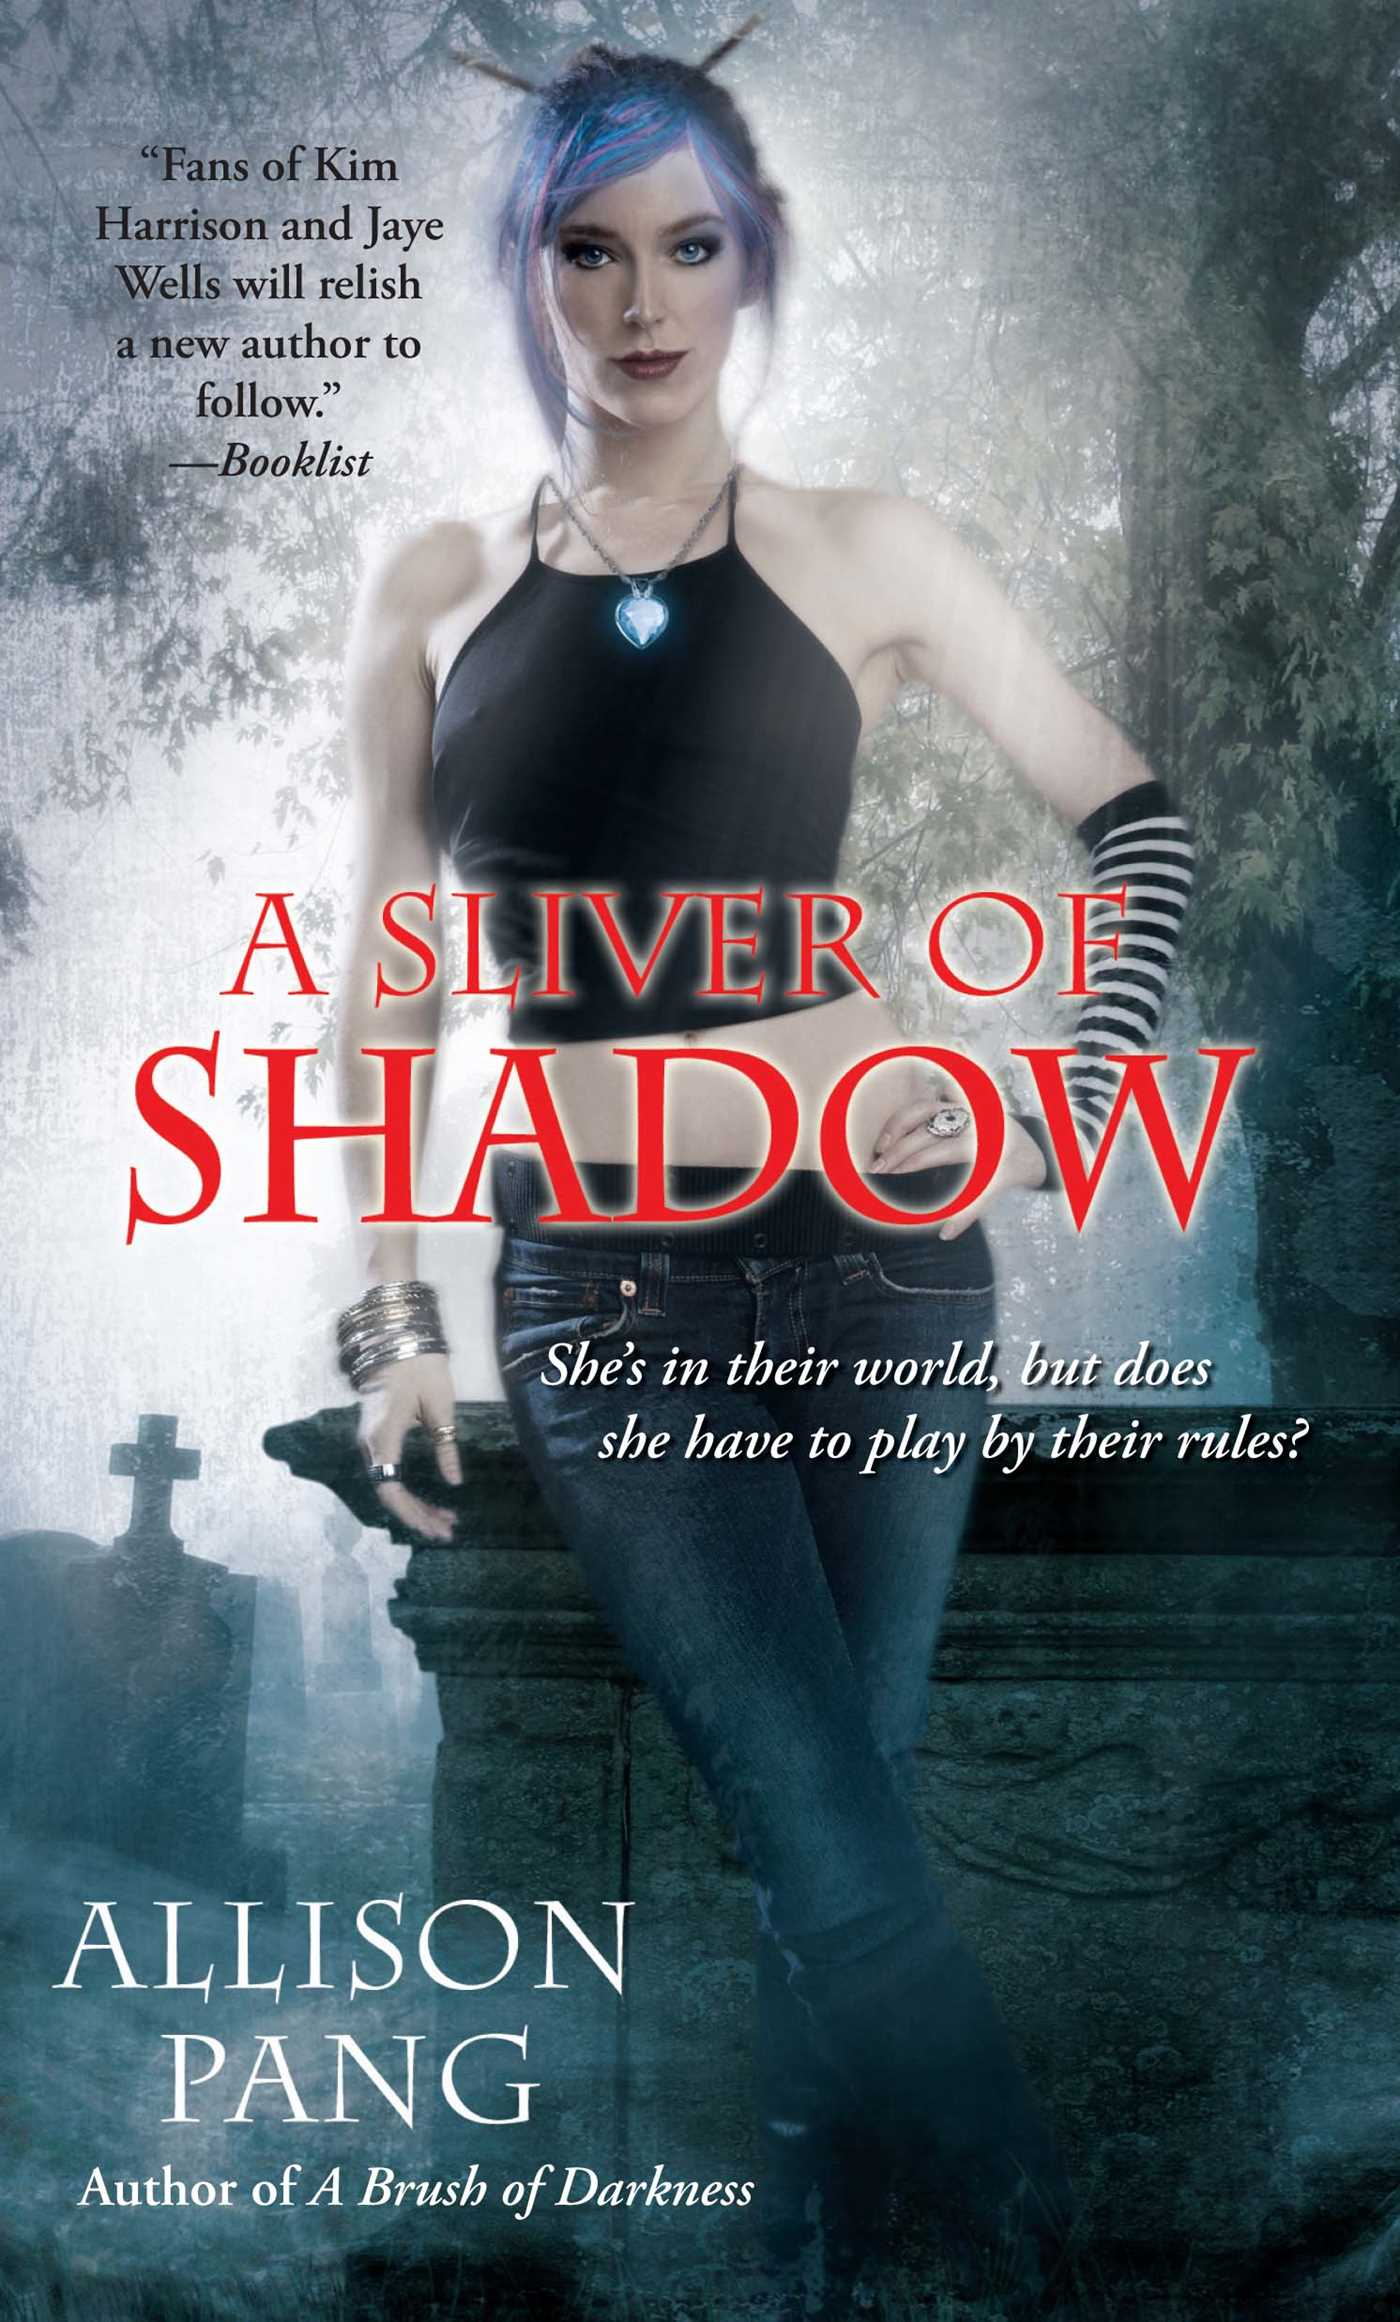 A-sliver-of-shadow-9781439198421_hr